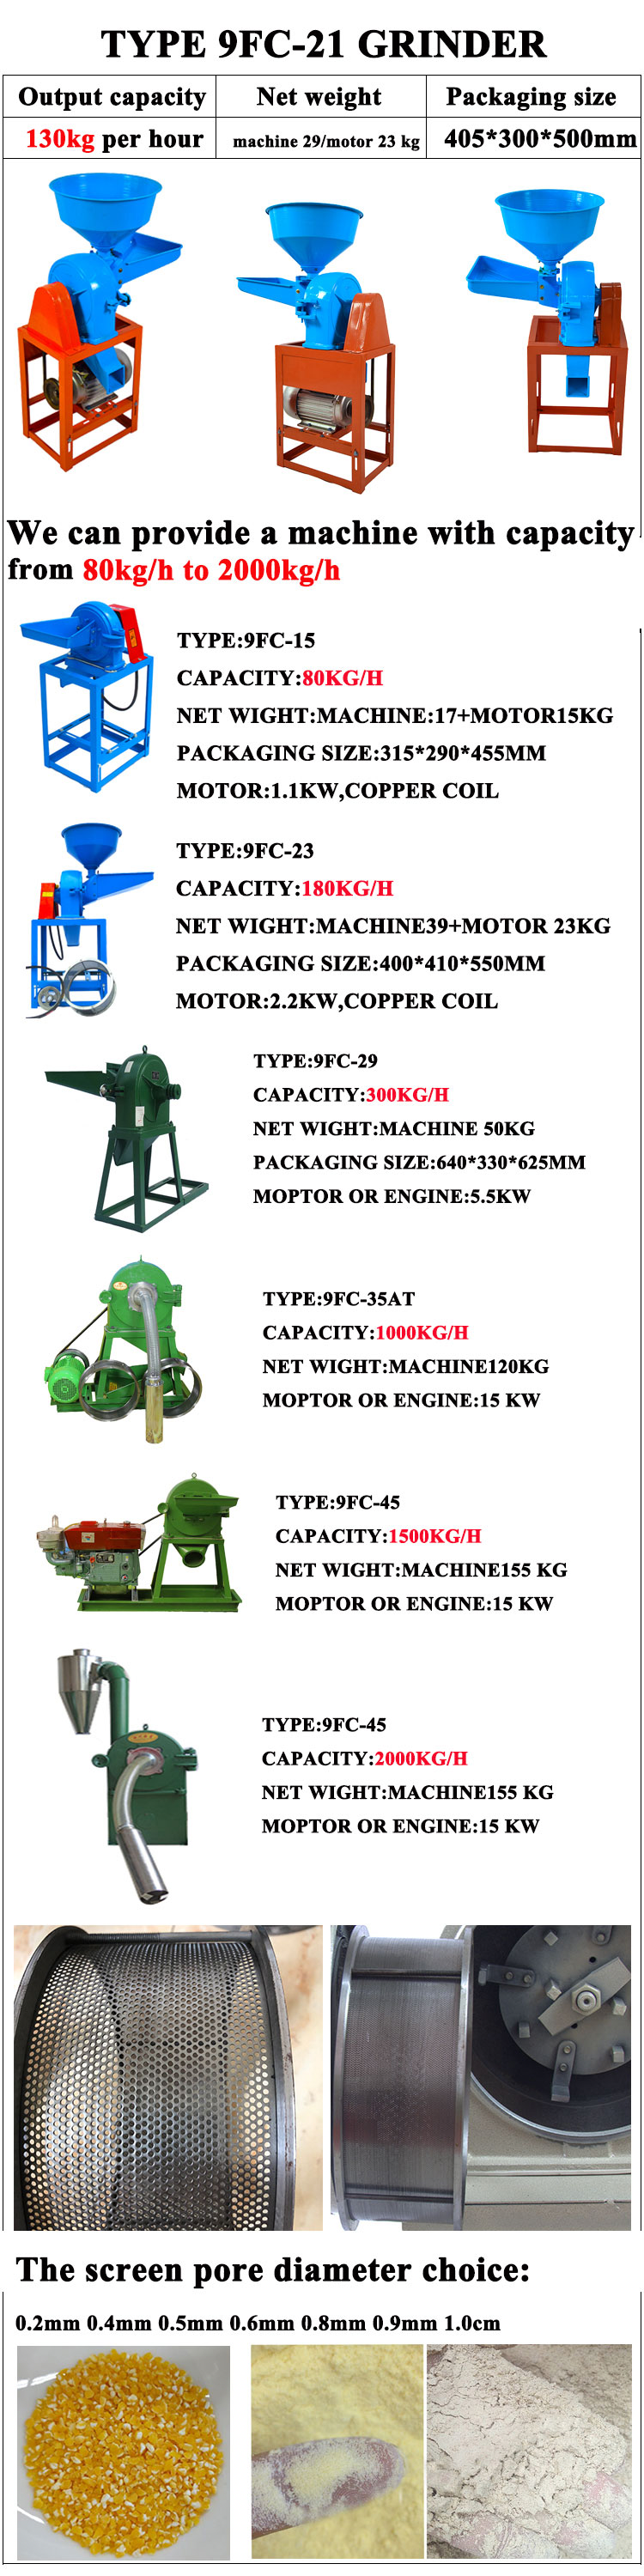 HELI brand grain corn bean grinding / grinder mill machine